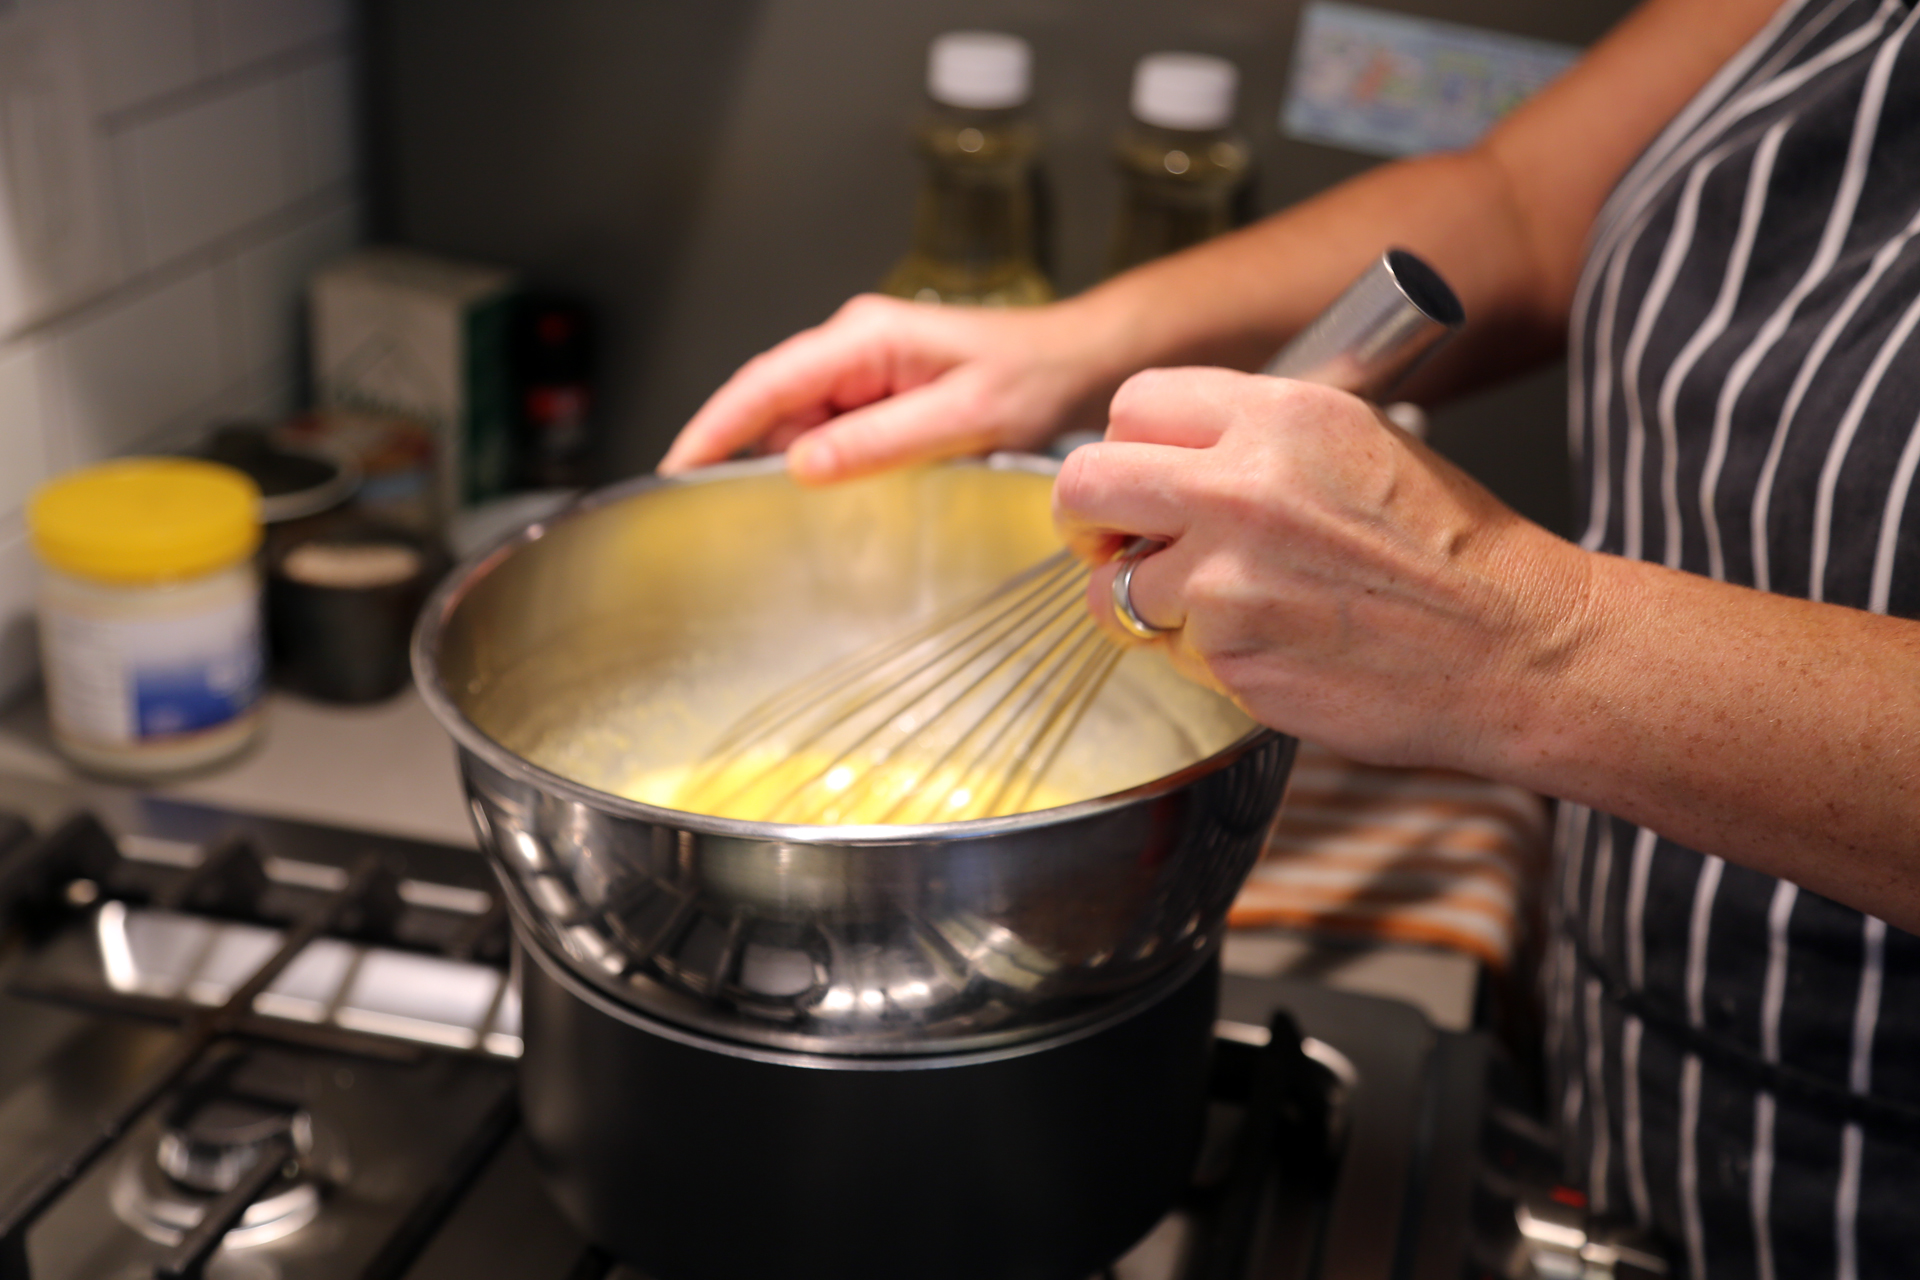 To make the lemon curd, in a heatproof bowl set over (but not touching) barely simmering water in a saucepan, whisk together the ingredients.